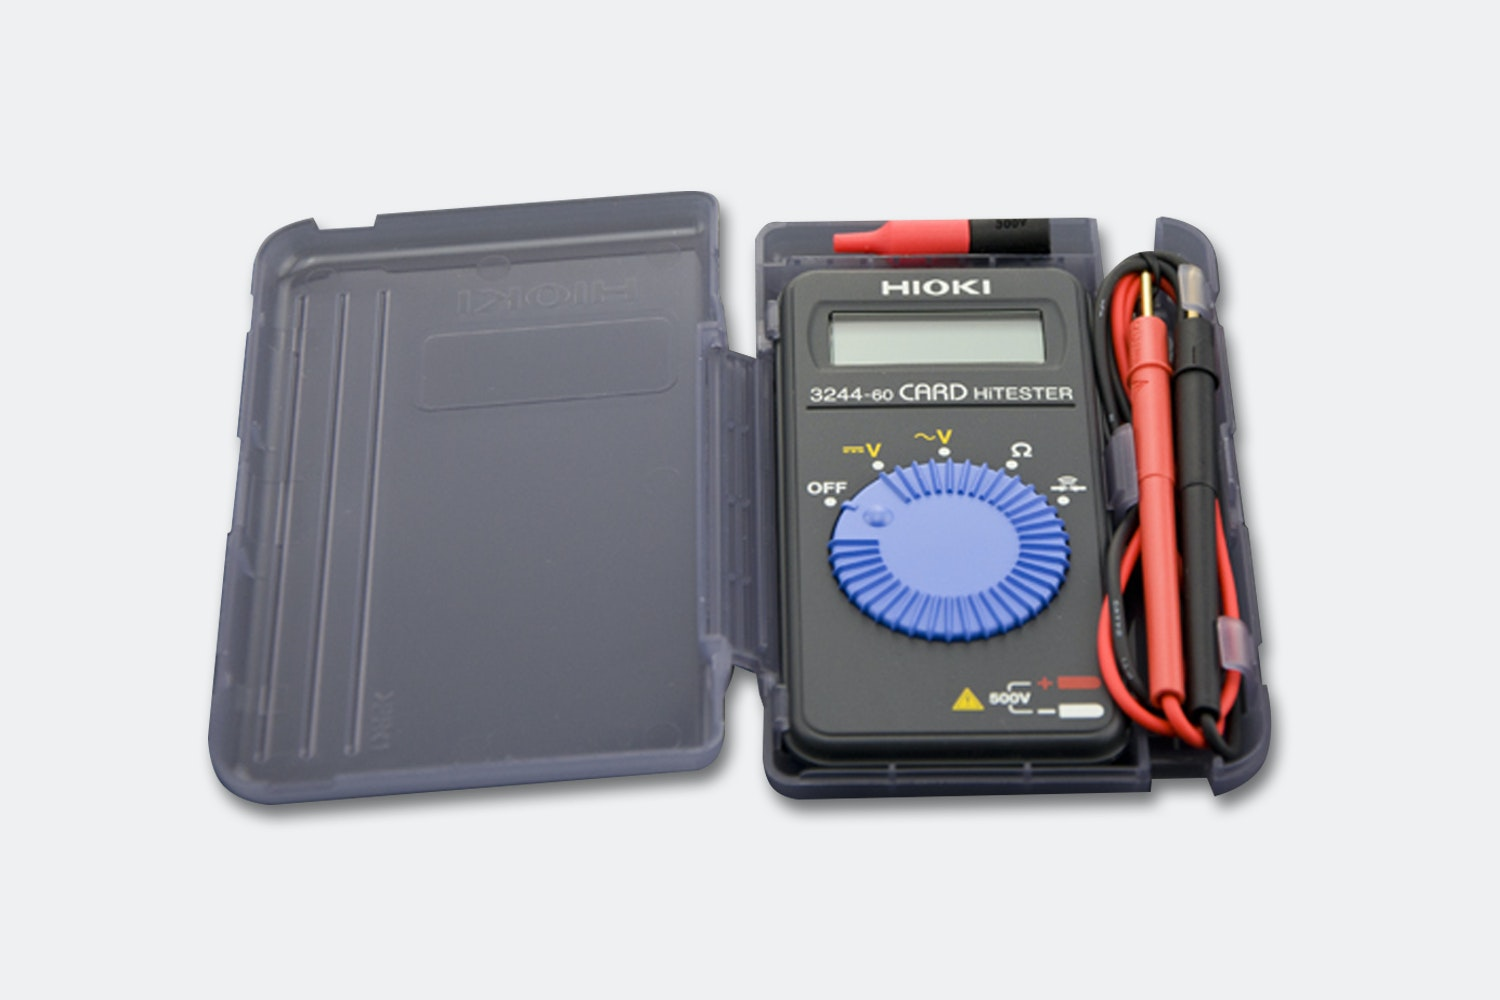 DFRobot Digital Card Multimeter